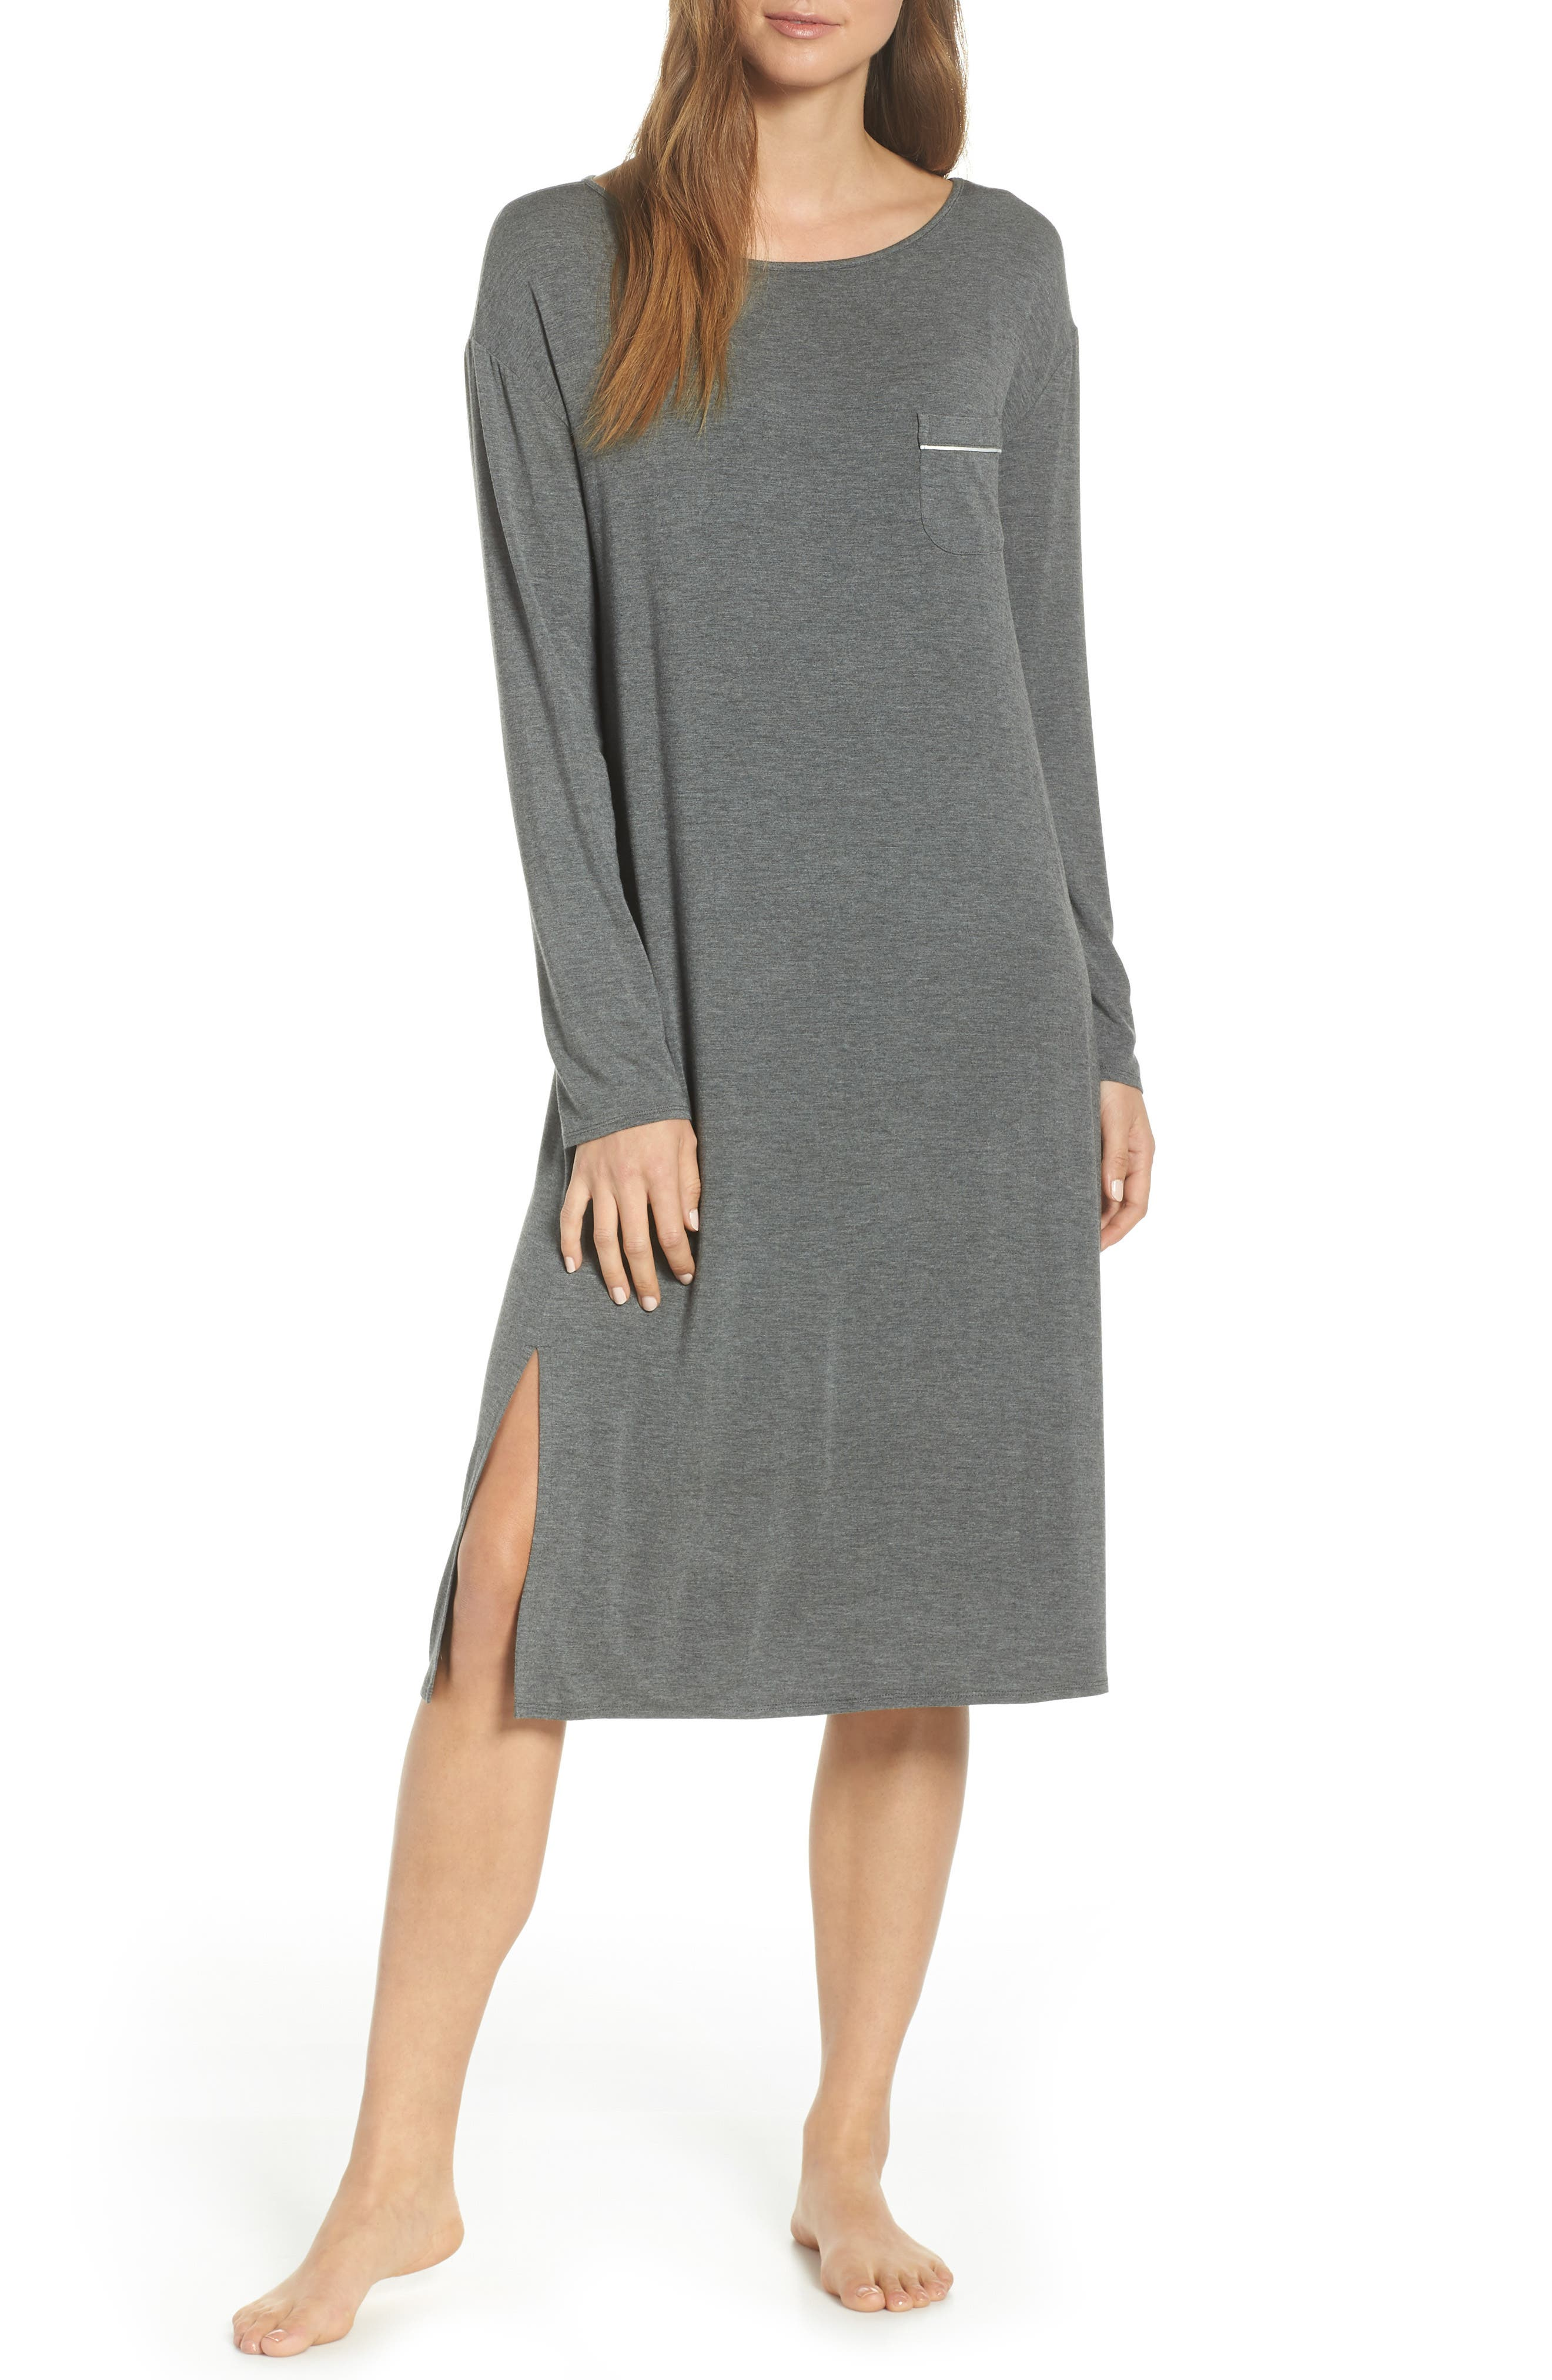 Nordstrom Lingerie Moonlight Midi Nightgown, Grey